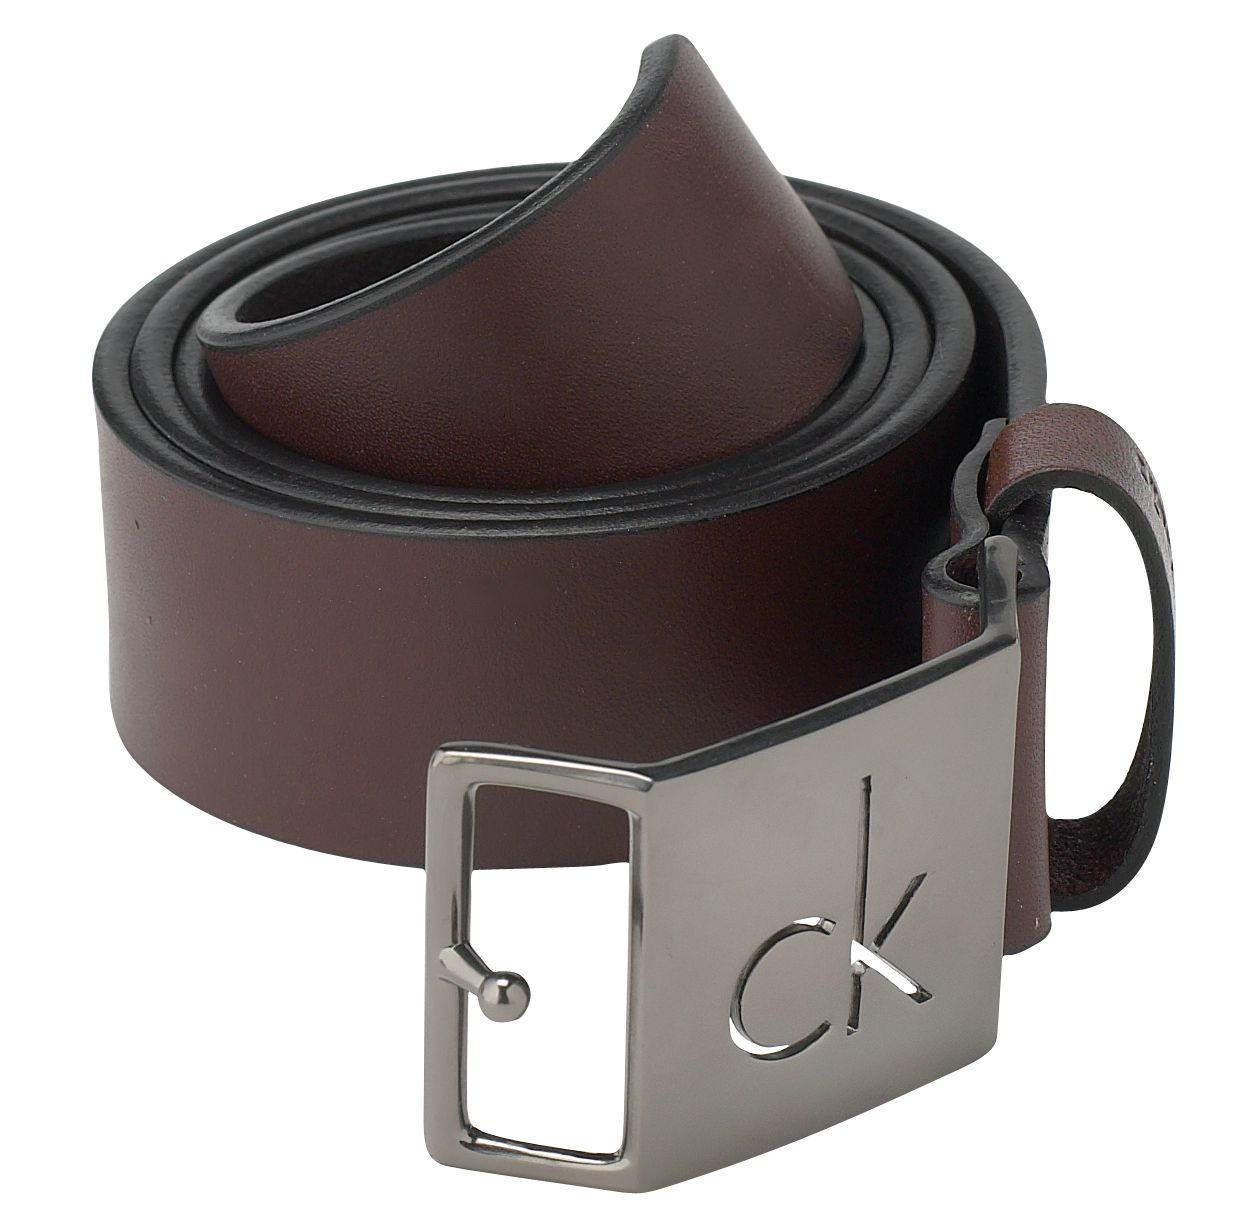 Casual leather logo belt